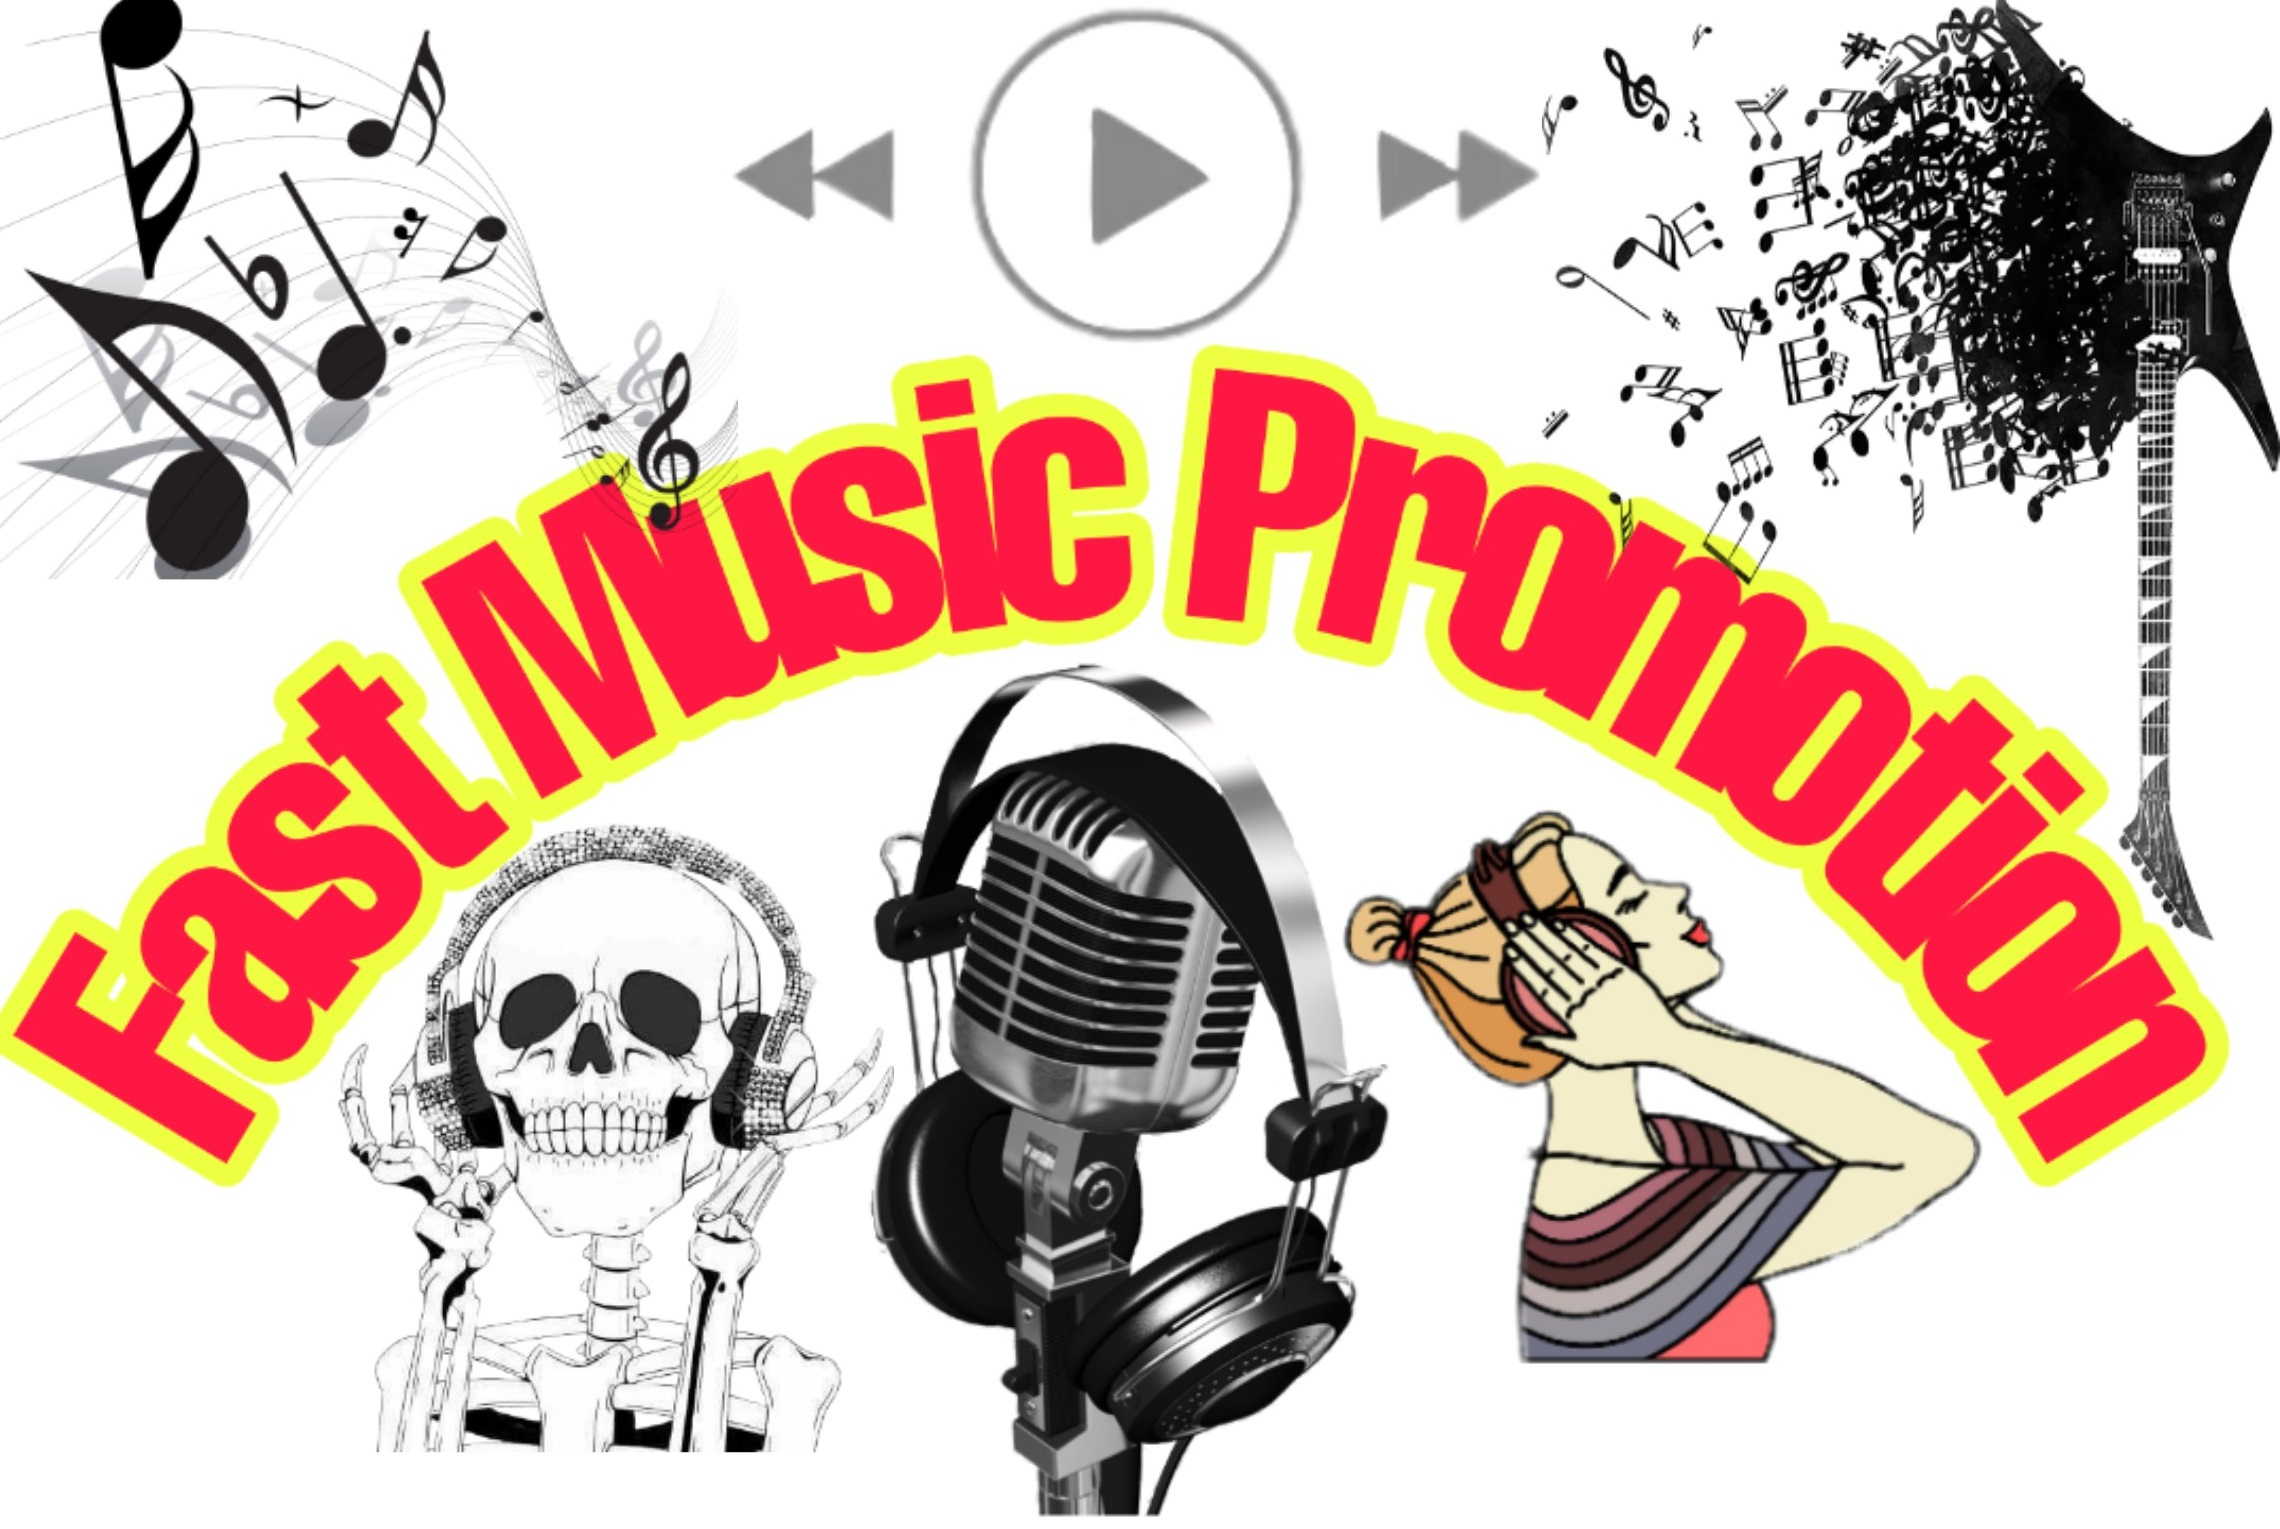 Fast Music Promotion World wide